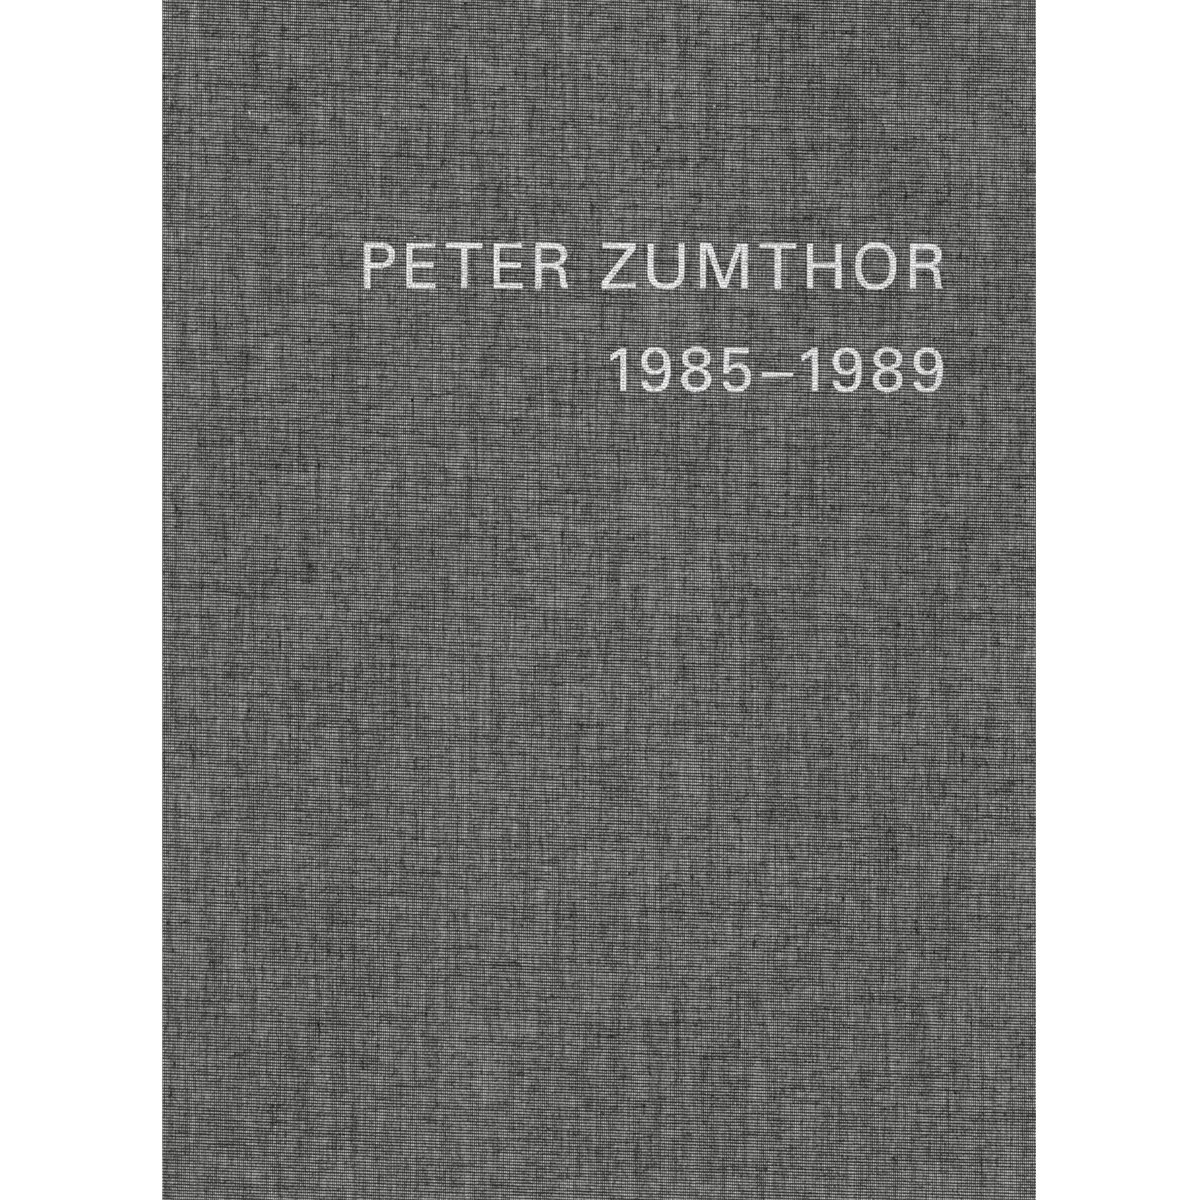 Peter Zumthor. Buildings and Projects, 1985-2013